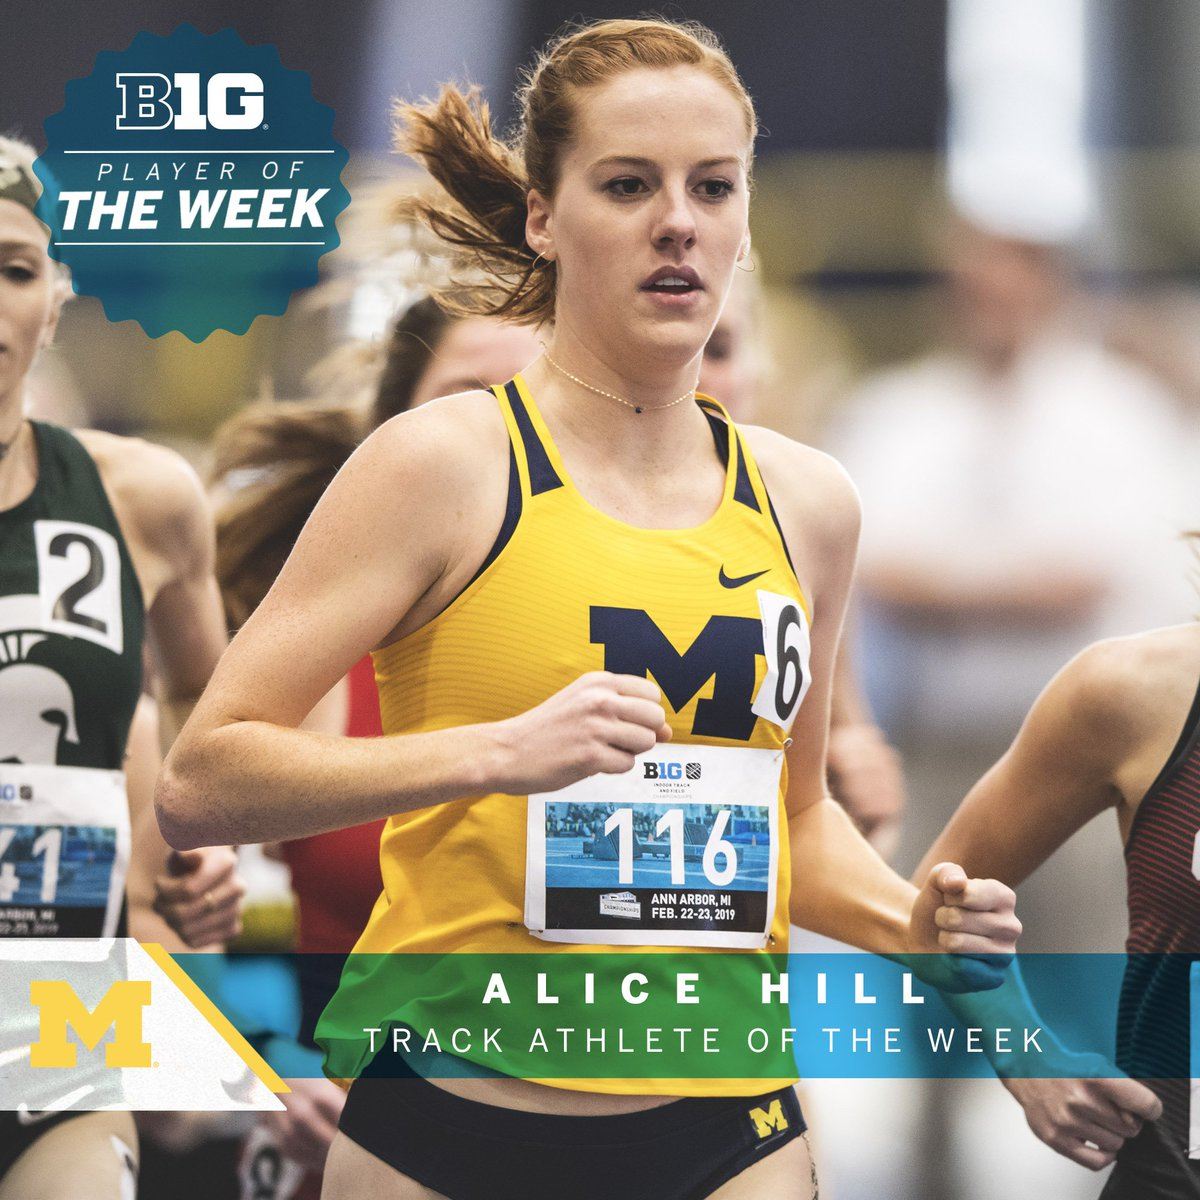 Alice Hill of @UMichTrack collected her first #B1GTF Outdoor Track Athlete of the Week award after posting the Big Ten's best time this year in the 3,000-meter steeplechase (10:04.58) in last weekend's Cardinal Classic at Stanford